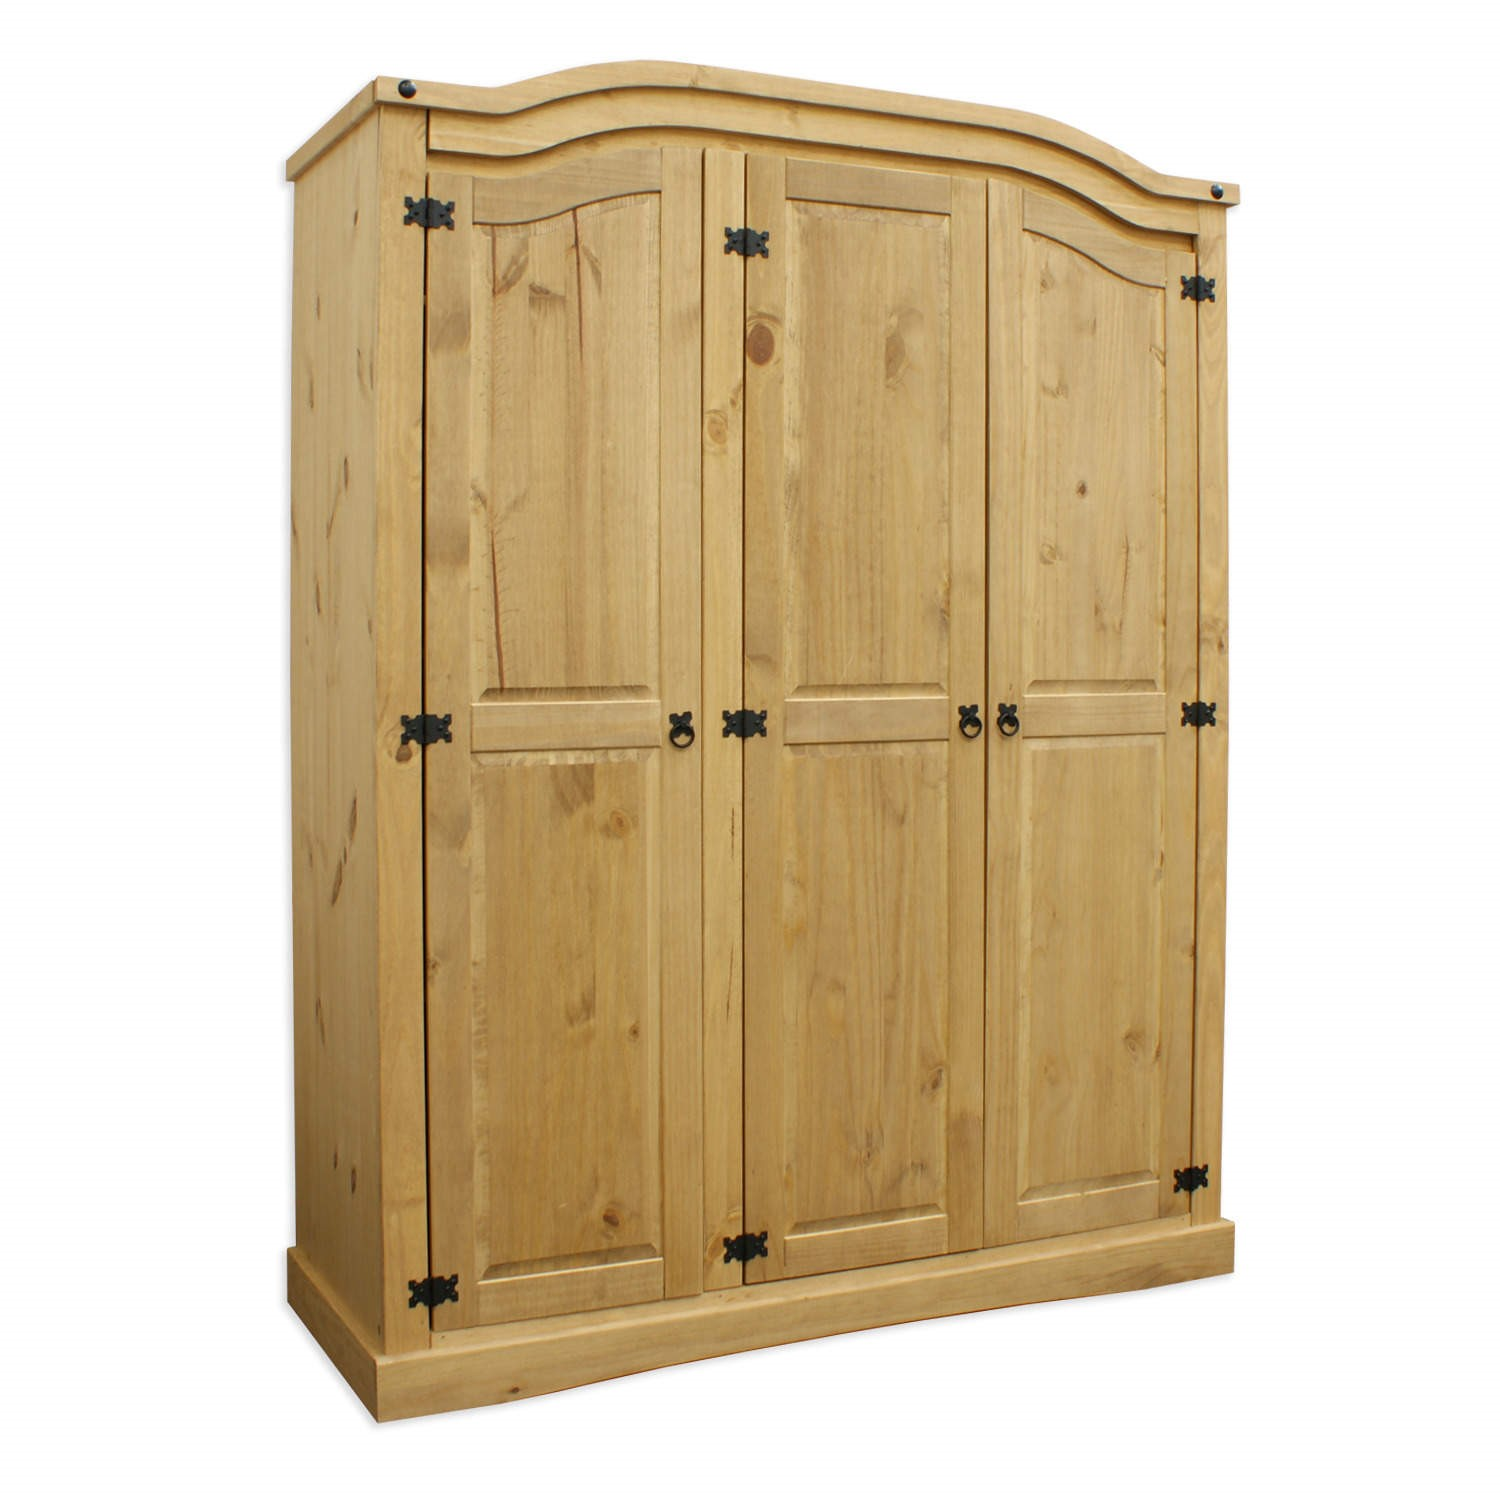 Mexican rustic solid wooden pine corona 3 door wardrobe for 1 door wardrobe with shelves